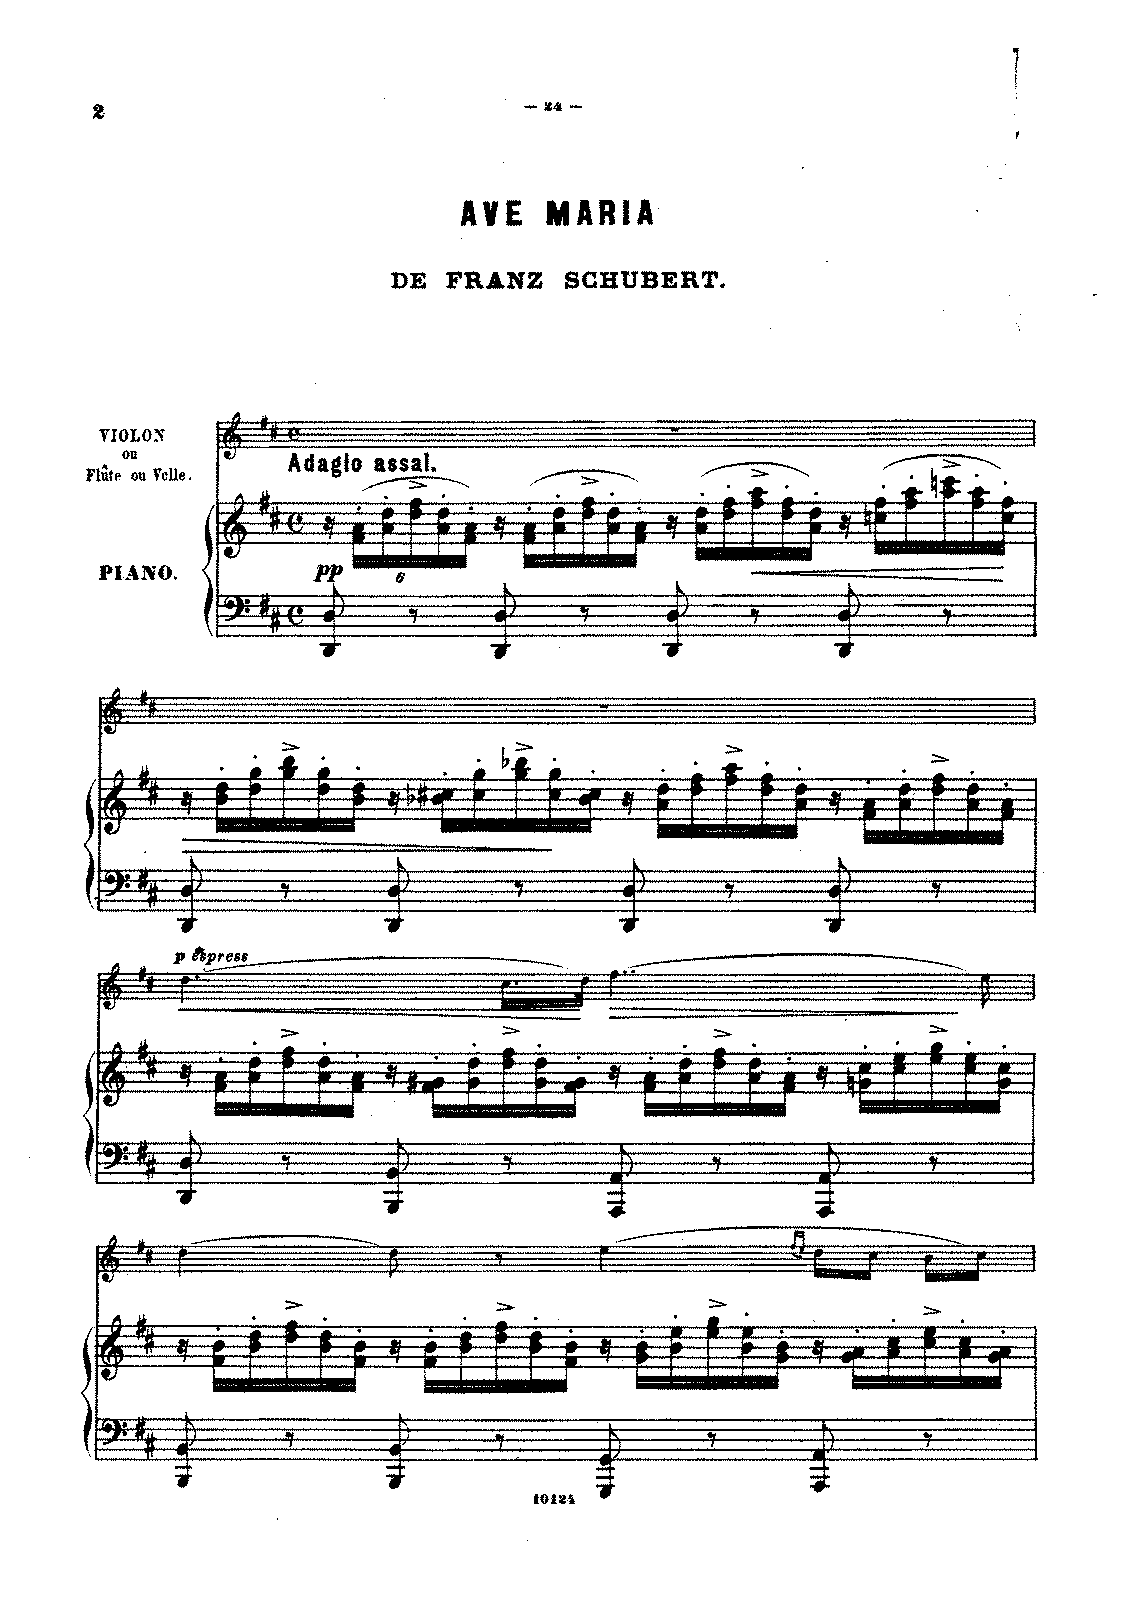 PMLP16143-Schubert - Ave Maria for Cello and Piano score.pdf